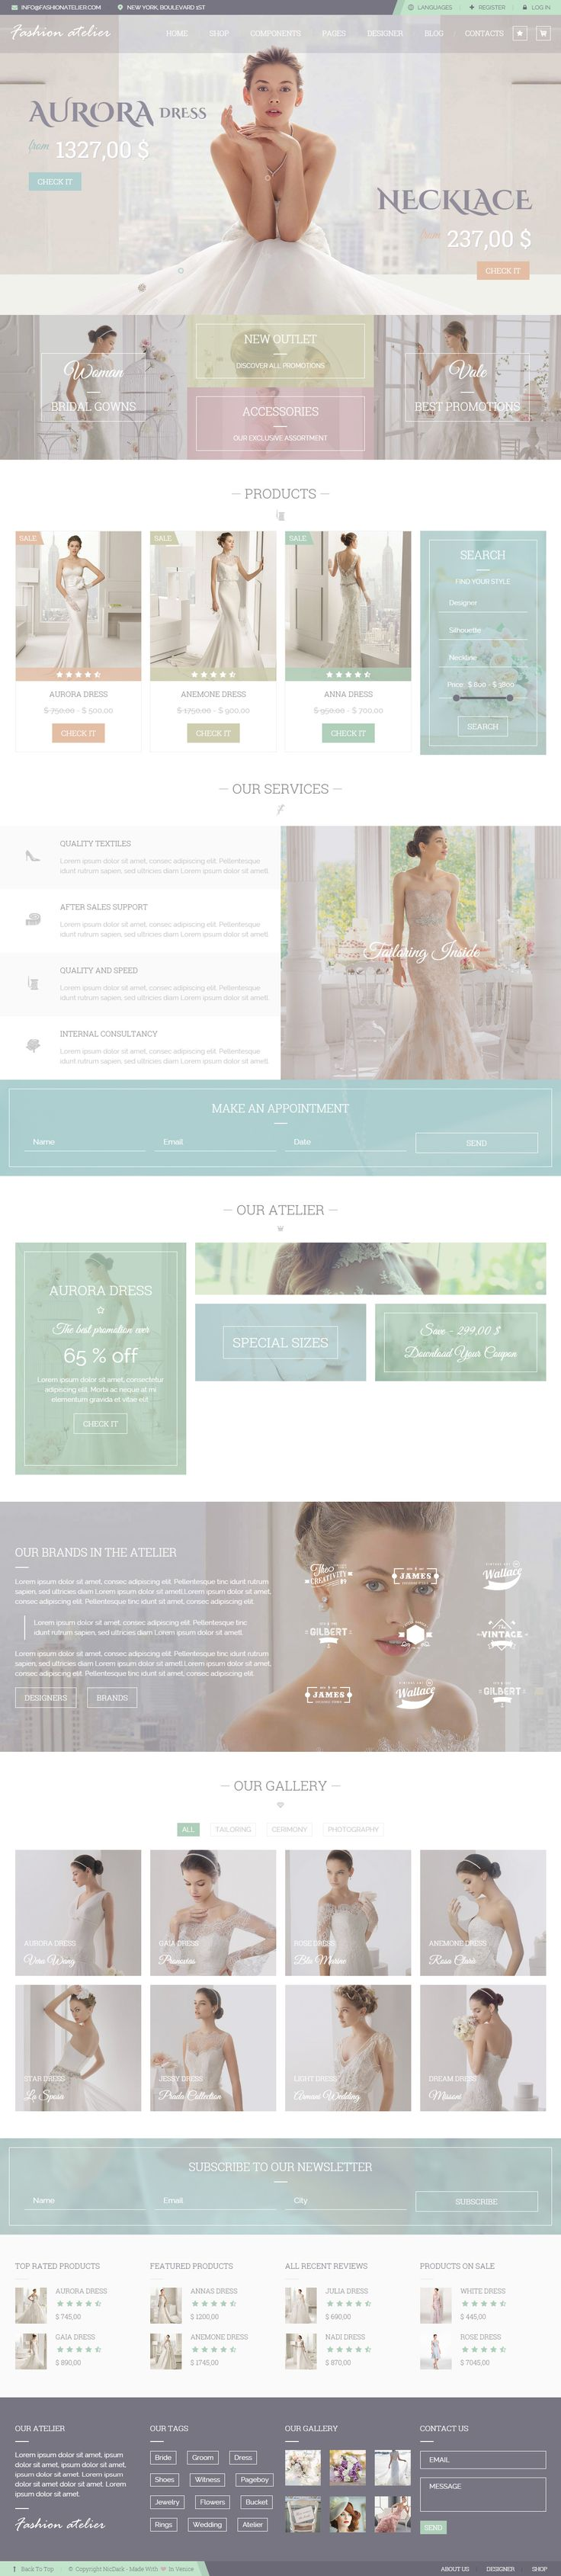 Fashion Atelier is Premium full Responsive Retina HTML5 Wedding template. Video Background. Parallax Scrolling. Isotope. Test free demo at: http://www.responsivemiracle.com/cms/fashion-atelier-premium-responsive-wedding-bridal-groom-shop-html5-template/